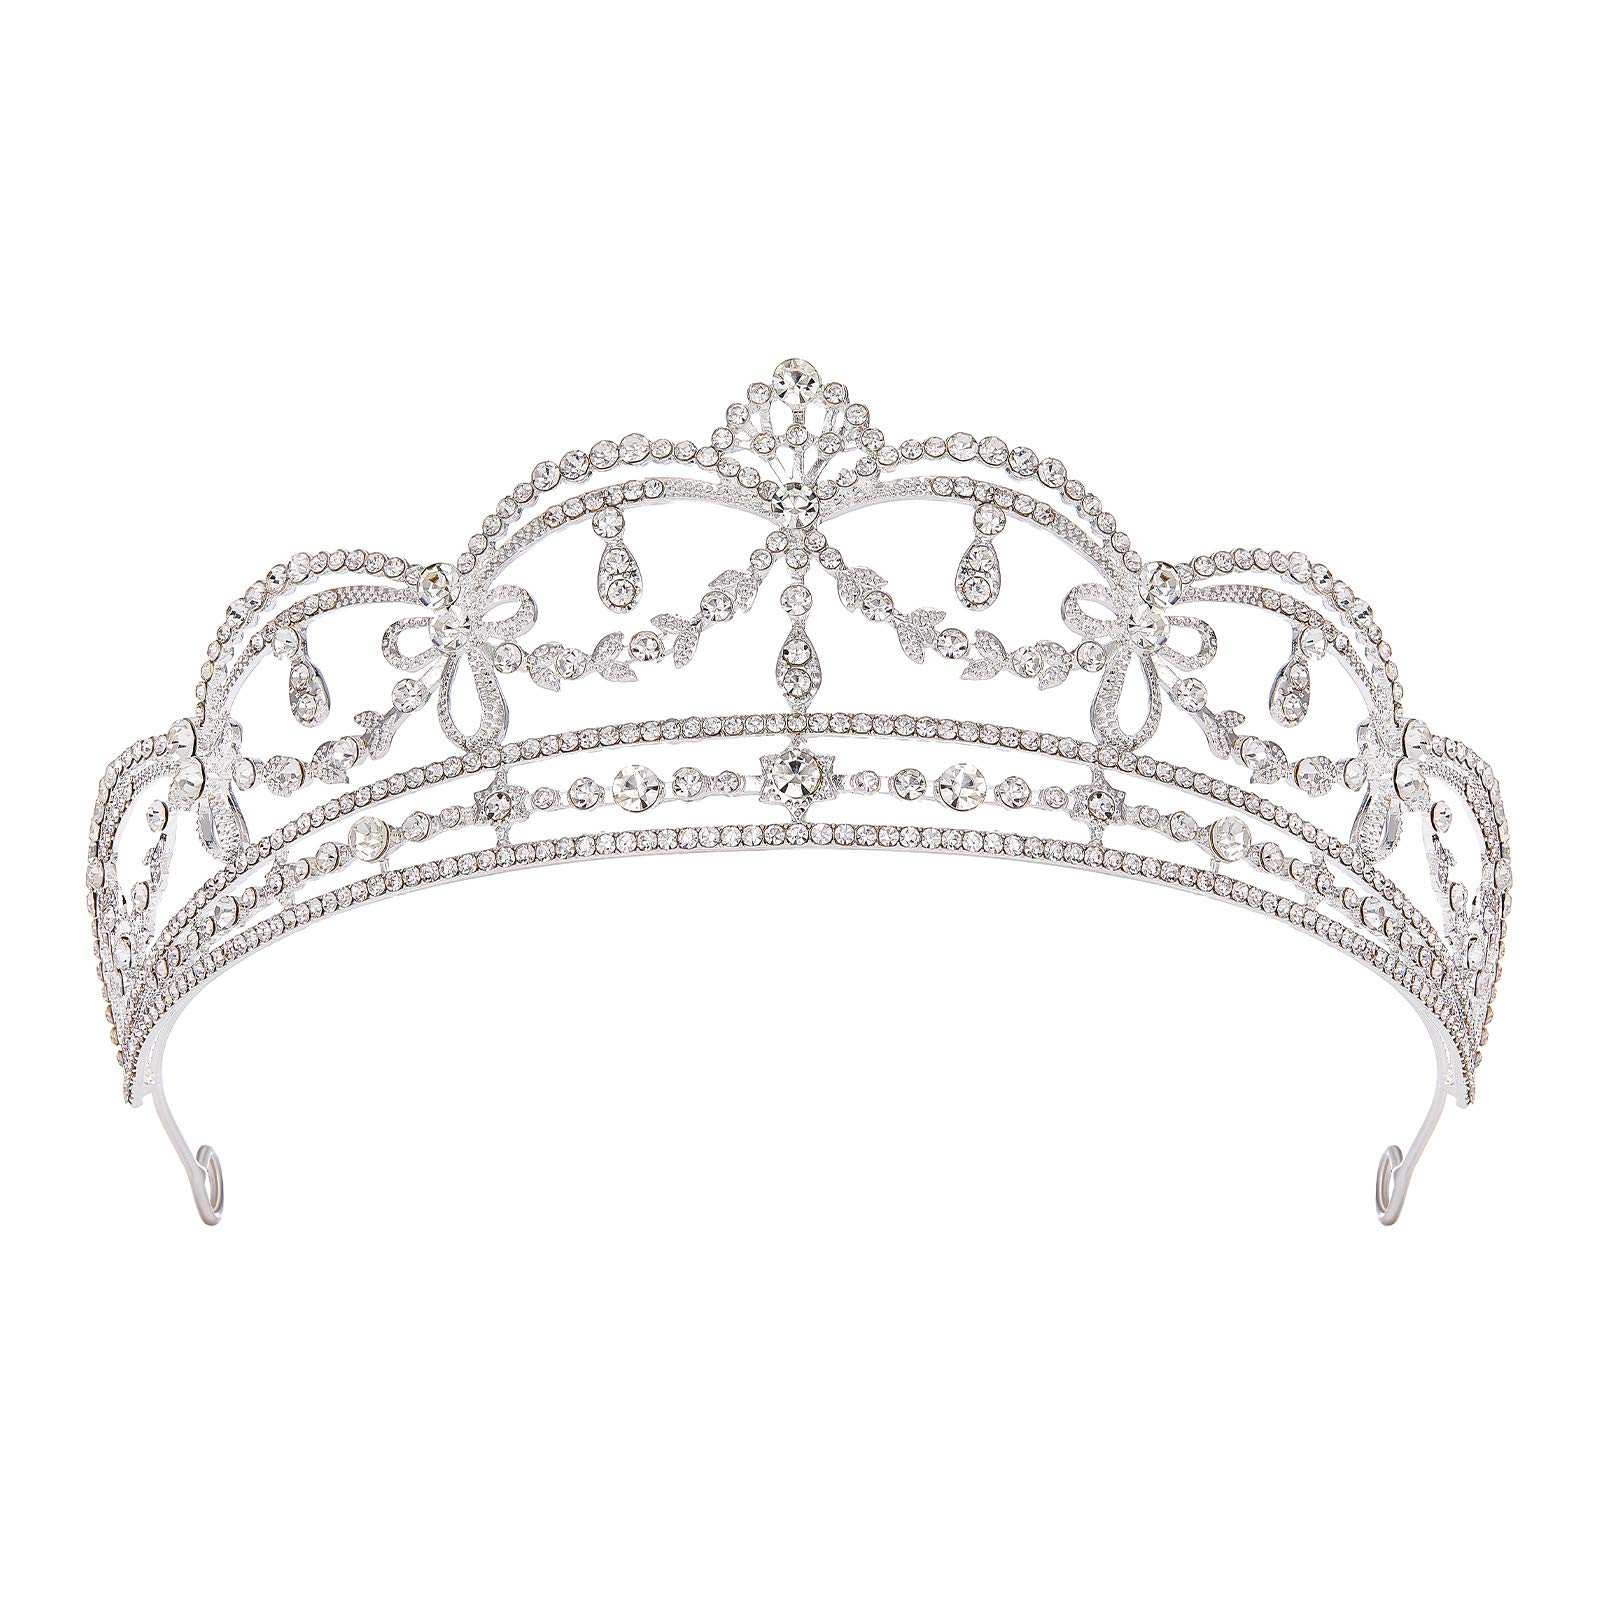 SWEETV Silver Wedding Tiara for Bride, Crystal Tiaras and Crowns for Women, Metal Bridal Headband Princess Headpieces for Birthday Quinceanera Pageant Prom